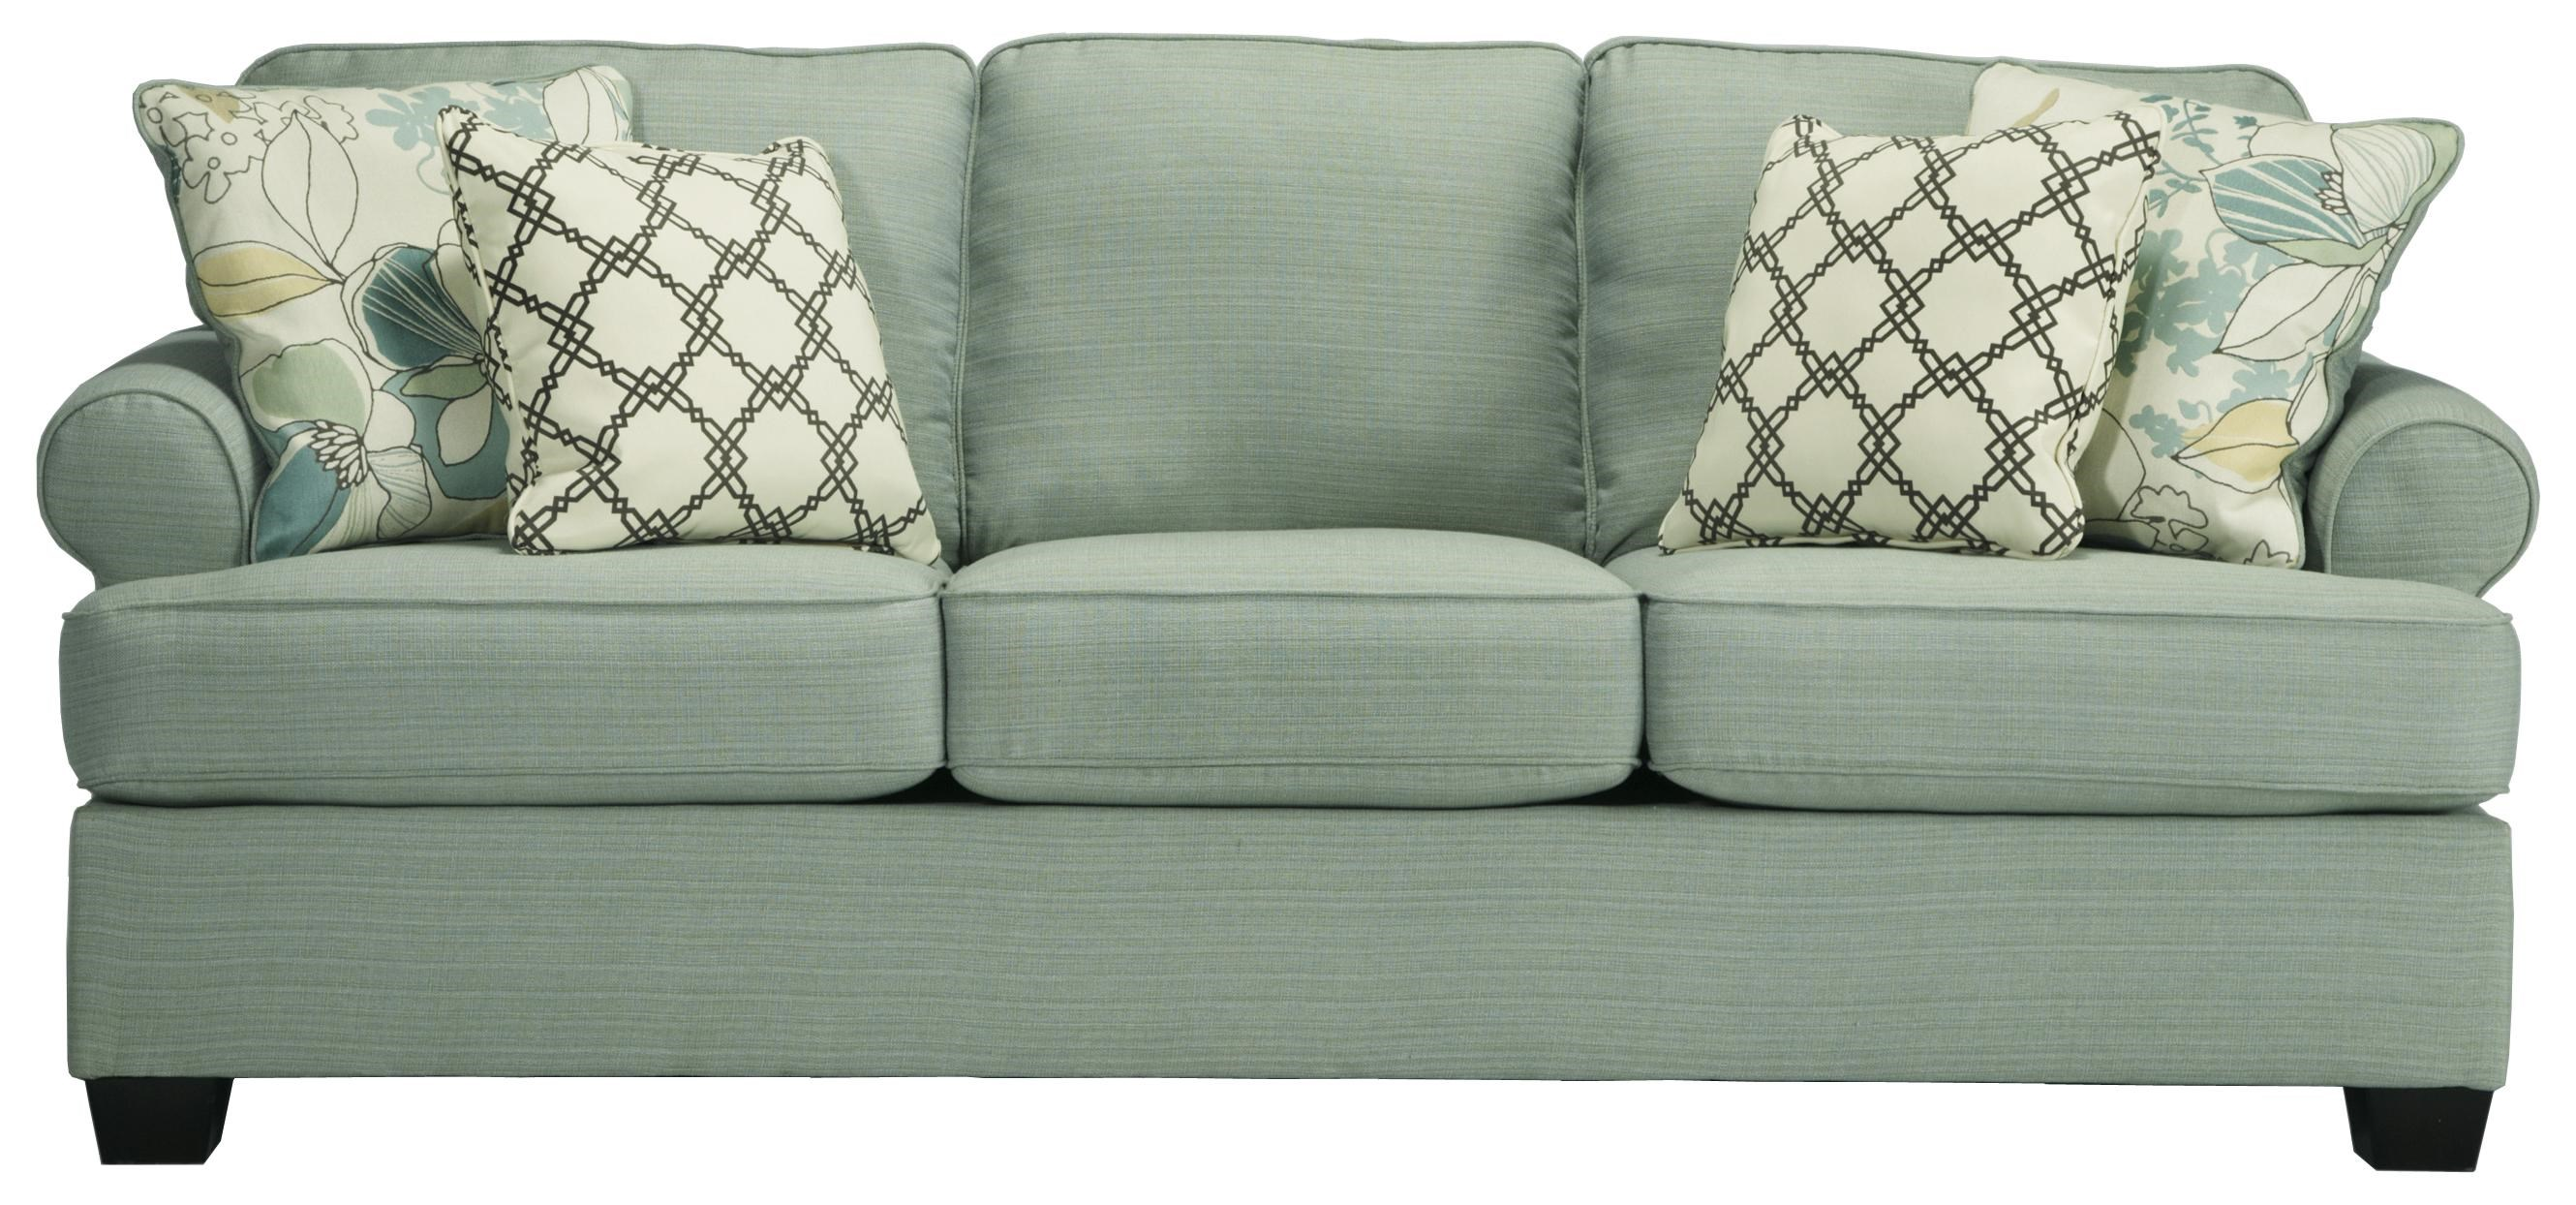 Superior Signature Design By Ashley DaystarQueen Sofabed ...